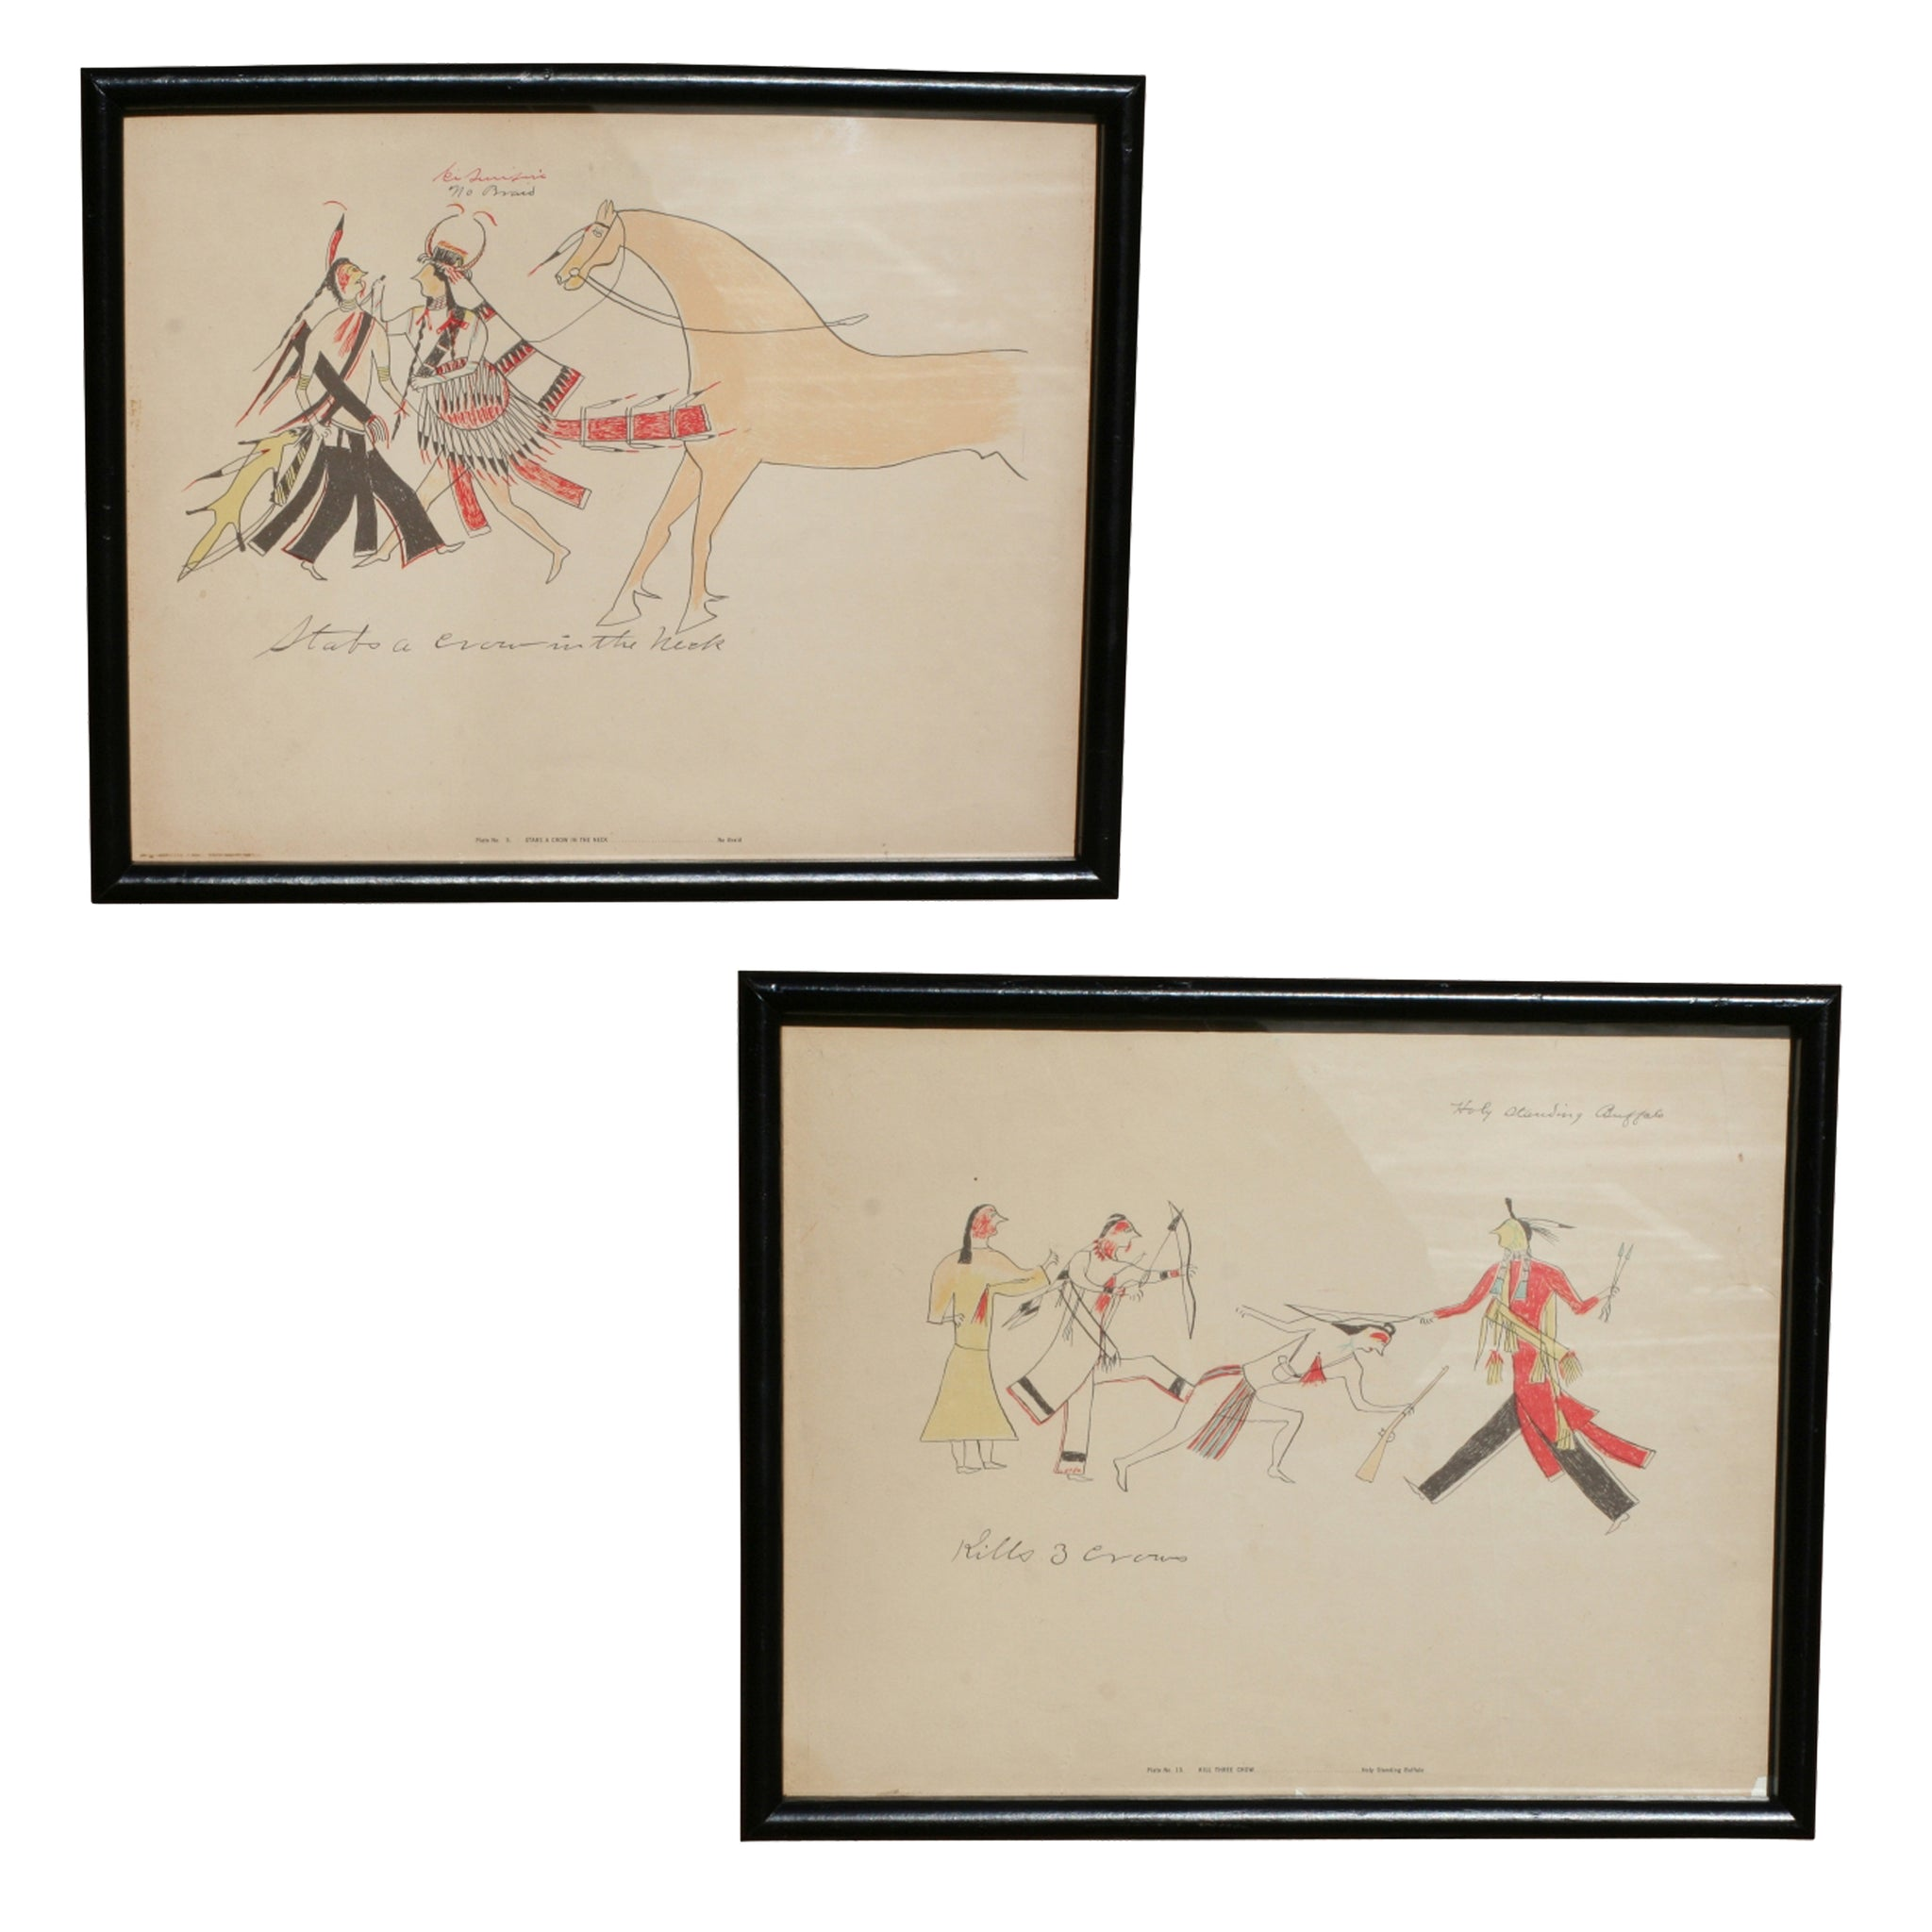 American Indian Ledger Drawings american indian other, horses-native american, ledger drawings